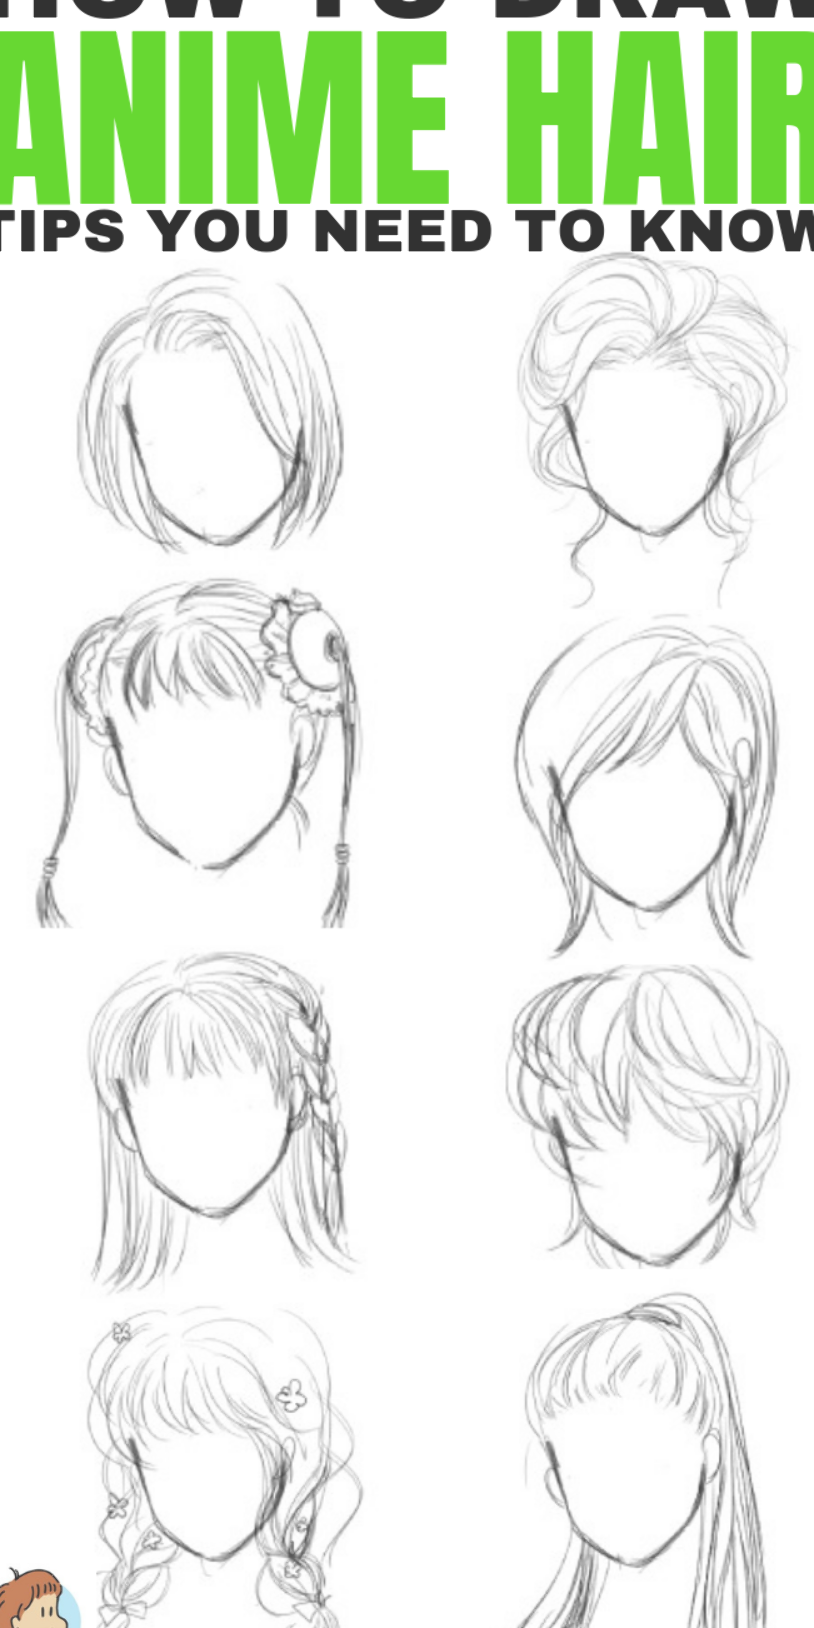 Pin By Kobe On Bts Wings In 2020 How To Draw Anime Hair Anime Hair Anime Drawings